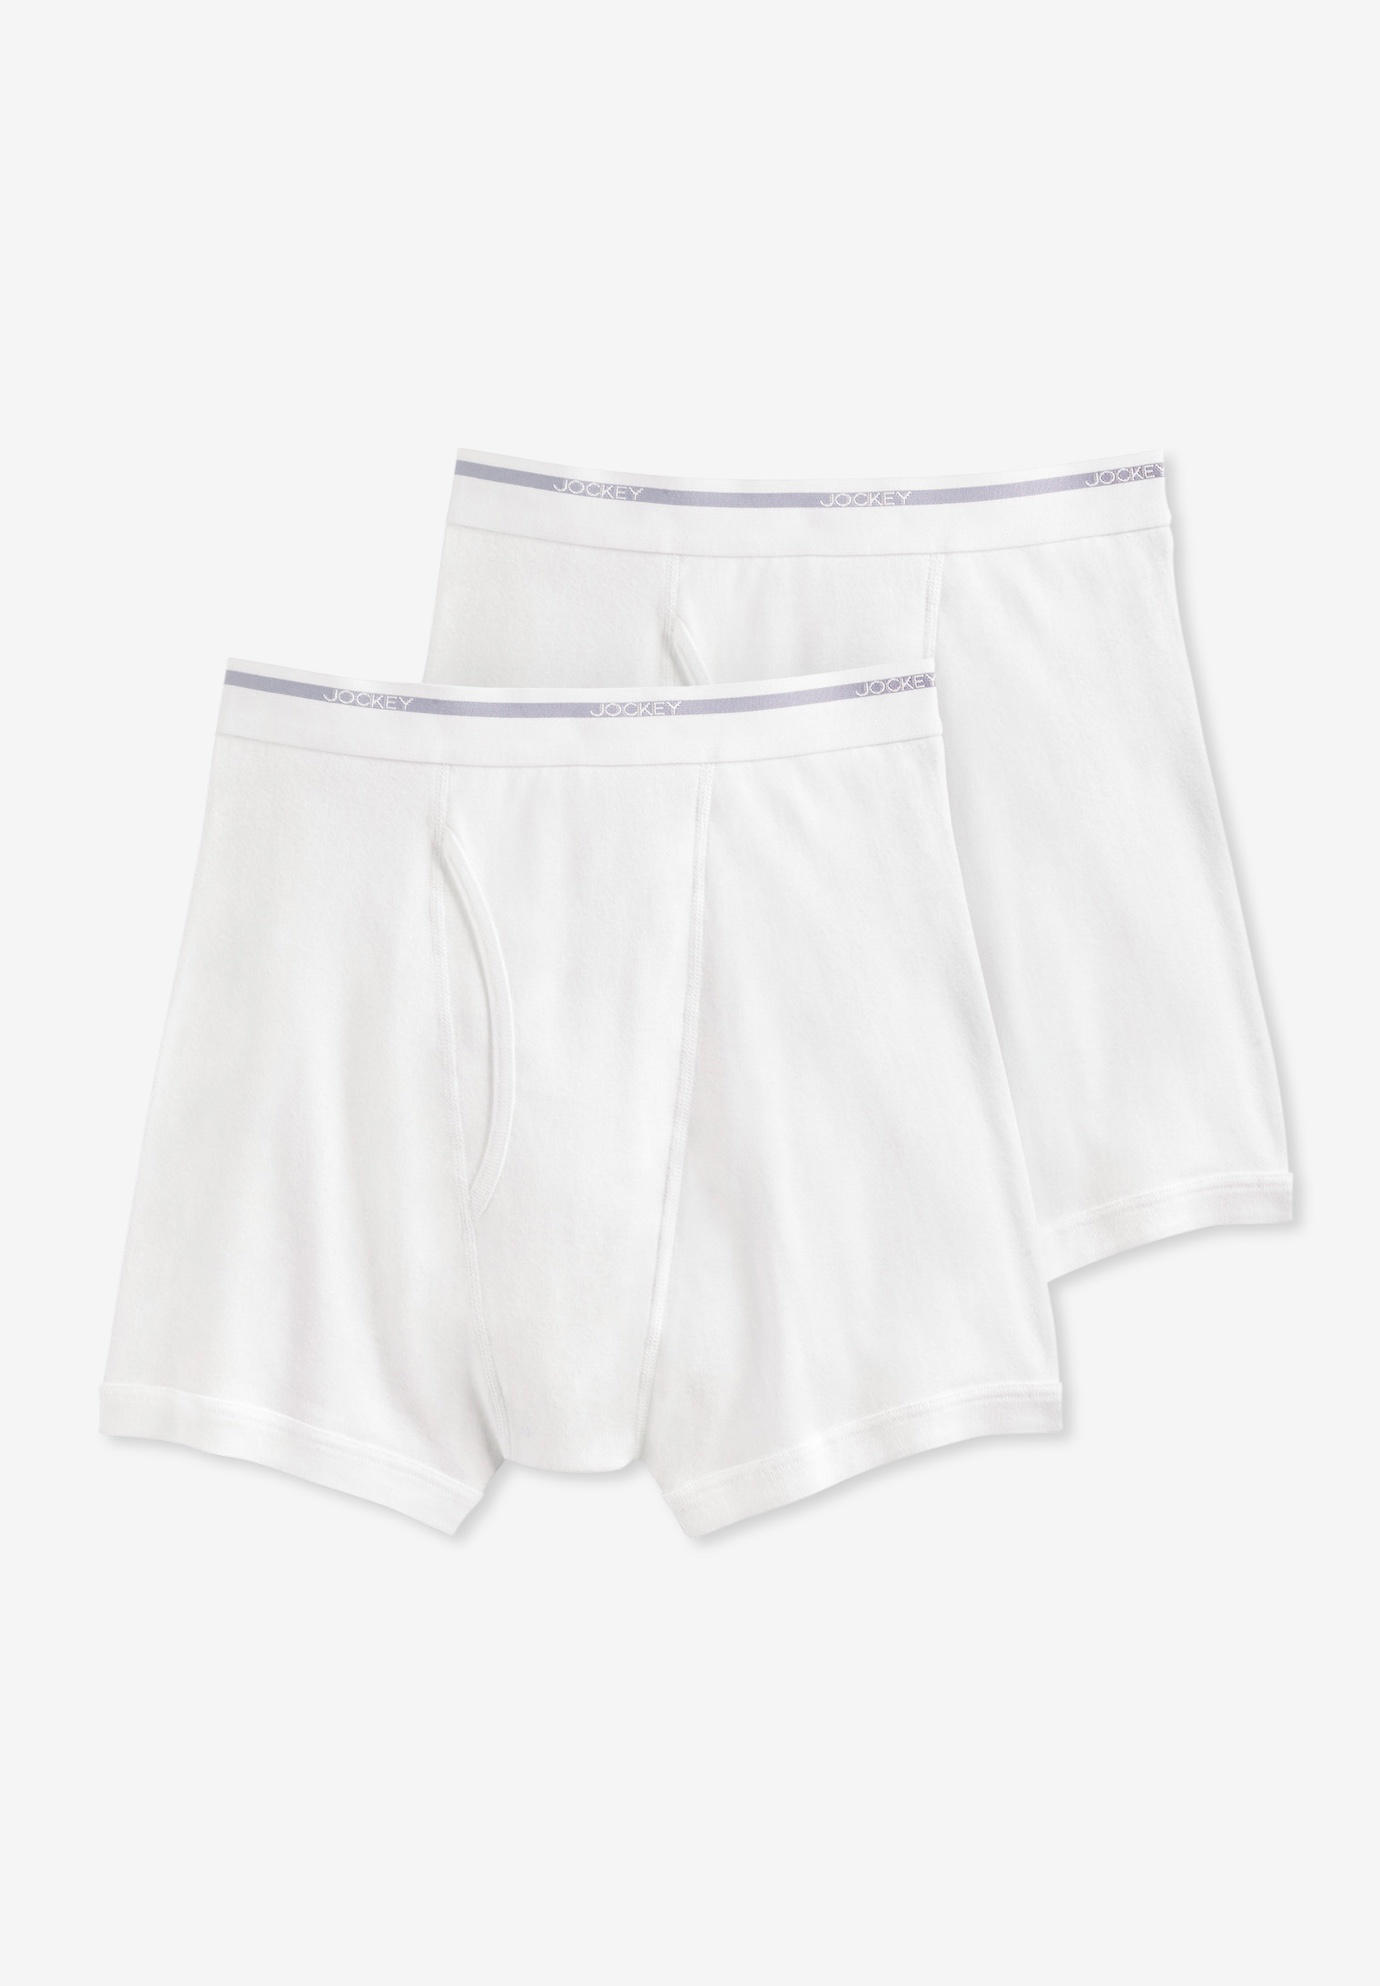 Jockey® Classic Boxer Briefs 2-Pack,